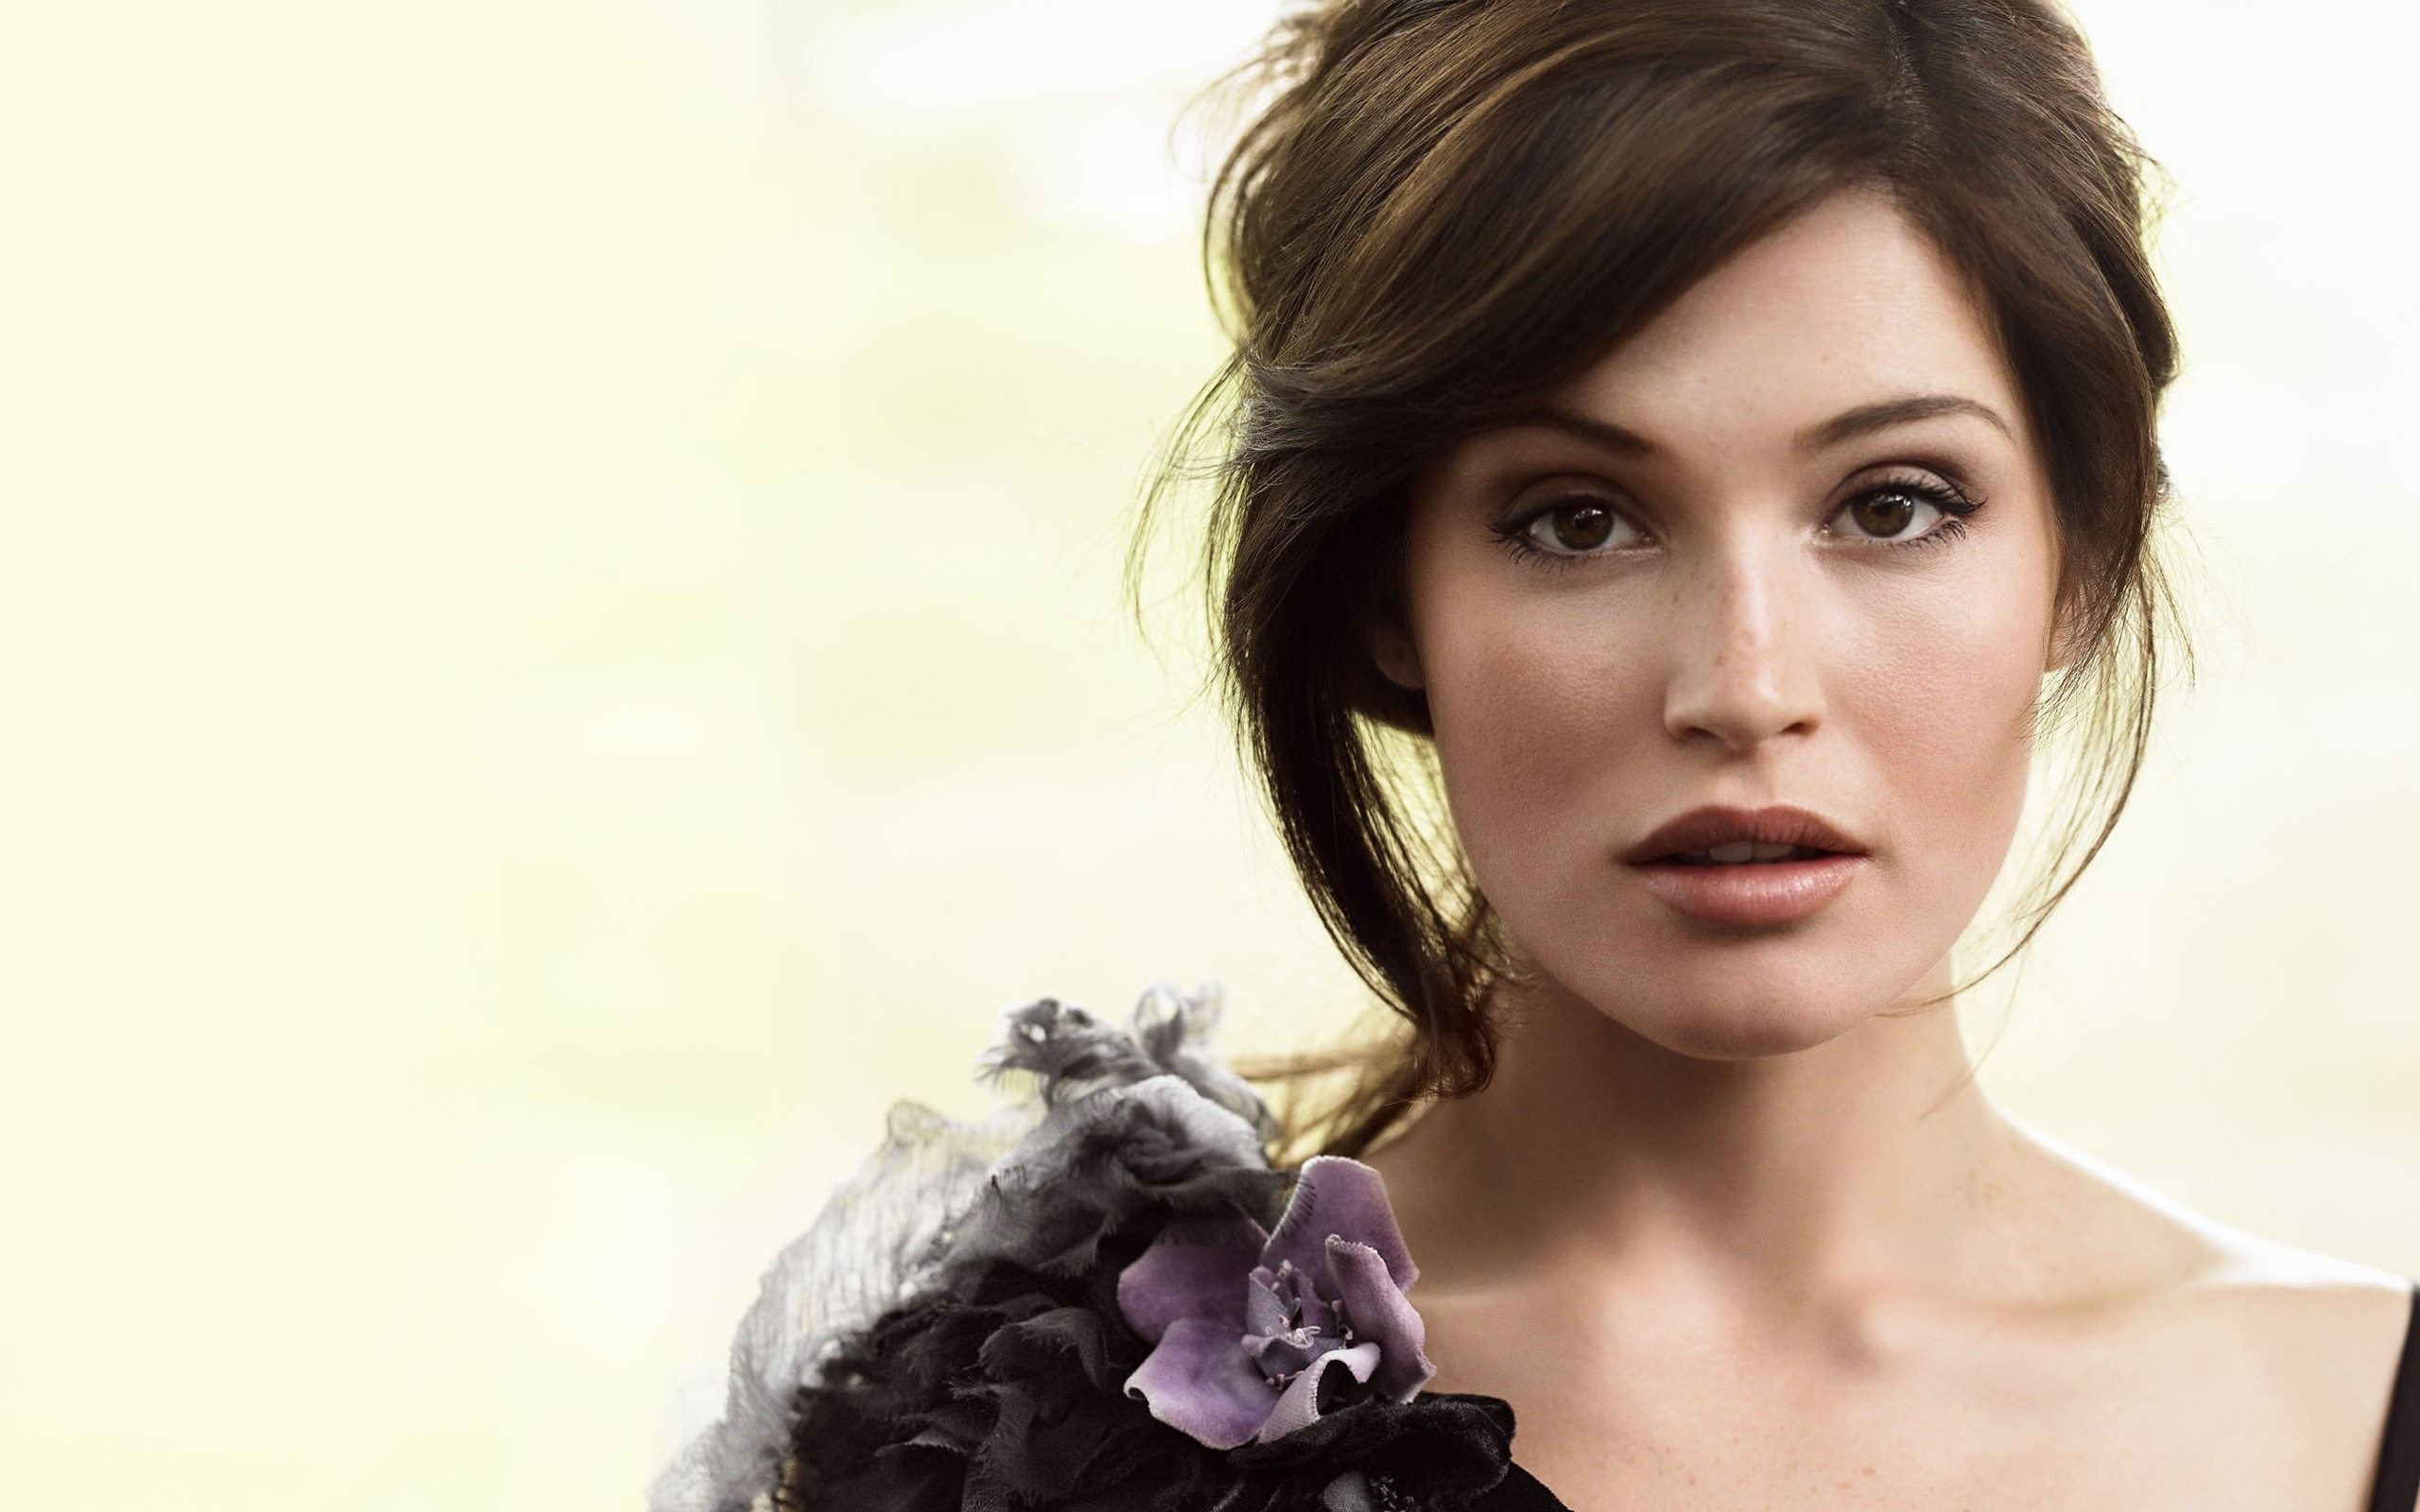 Please check our widescreen hd wallpaper below and bring beauty to your desktop. Gemma Arterton Wallpaper